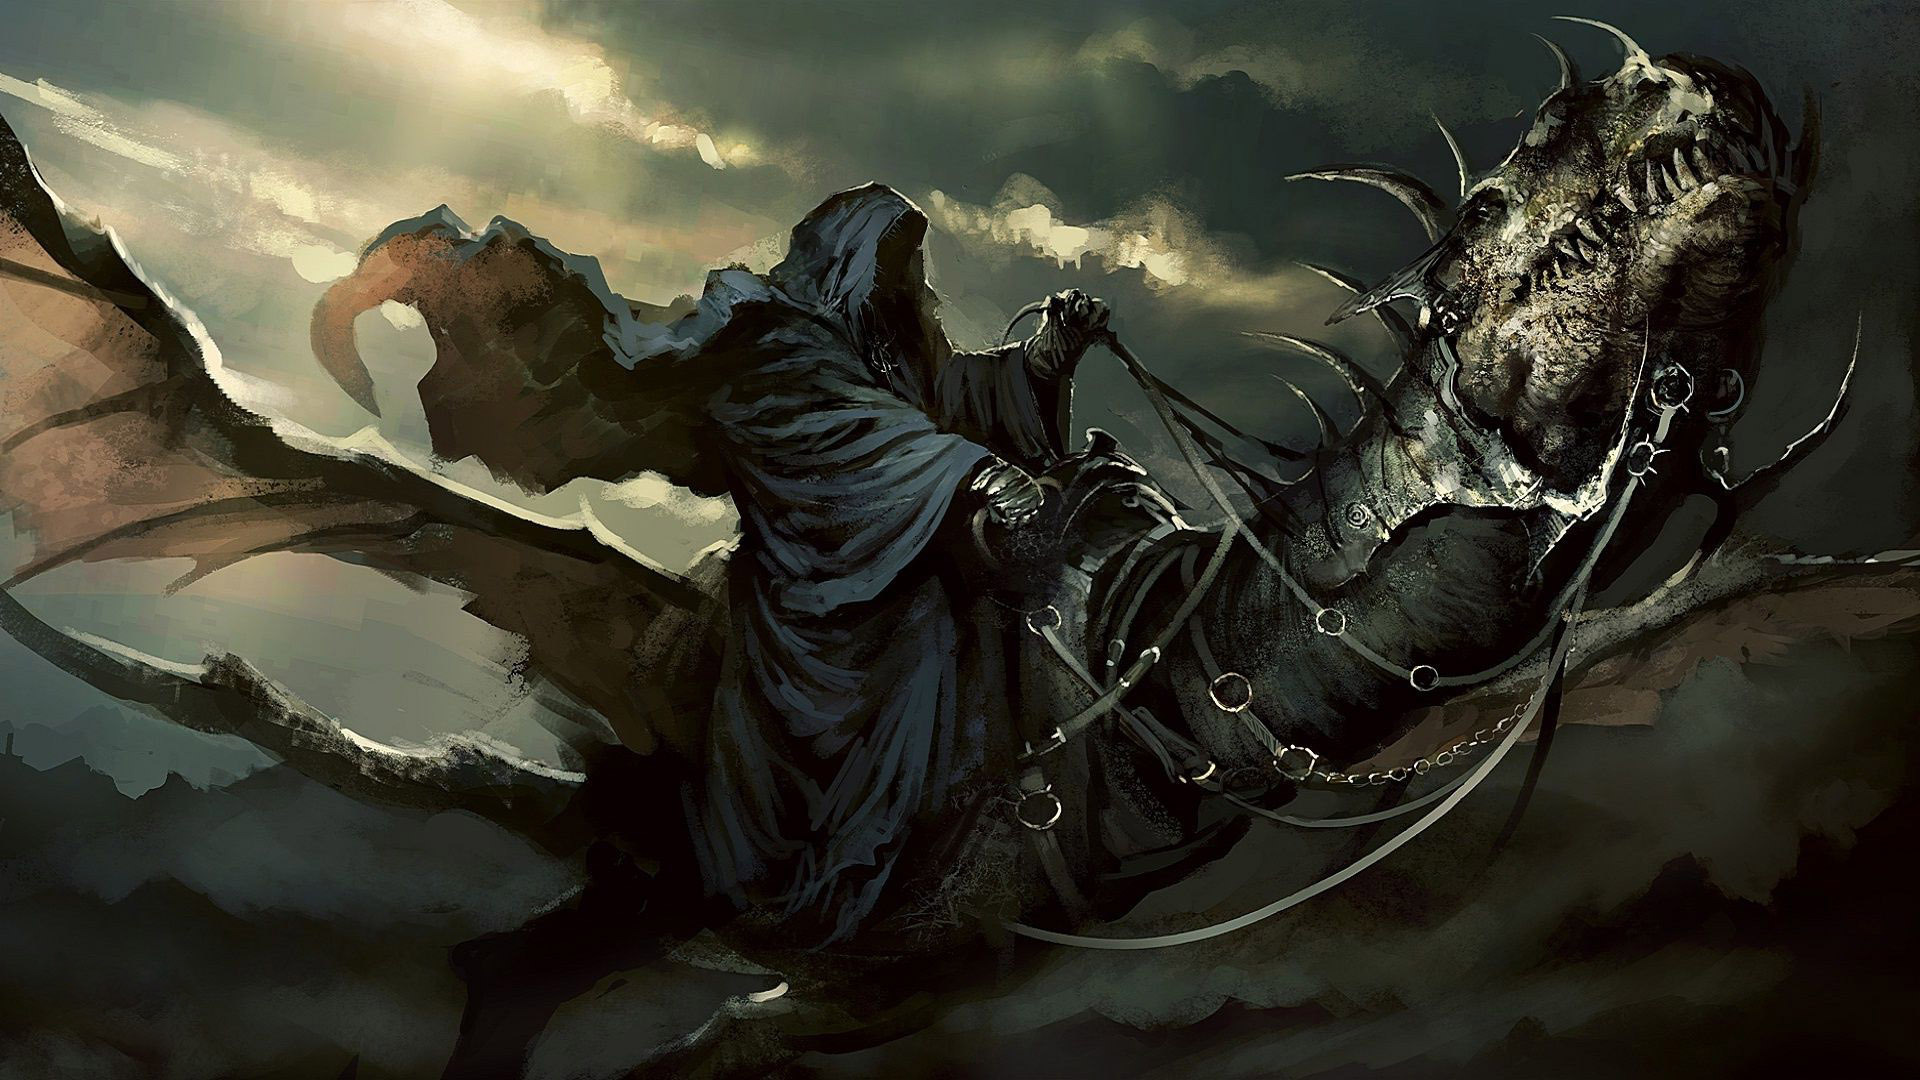 Lord of the Rings Nazgul wallpaper 18465 1920x1080